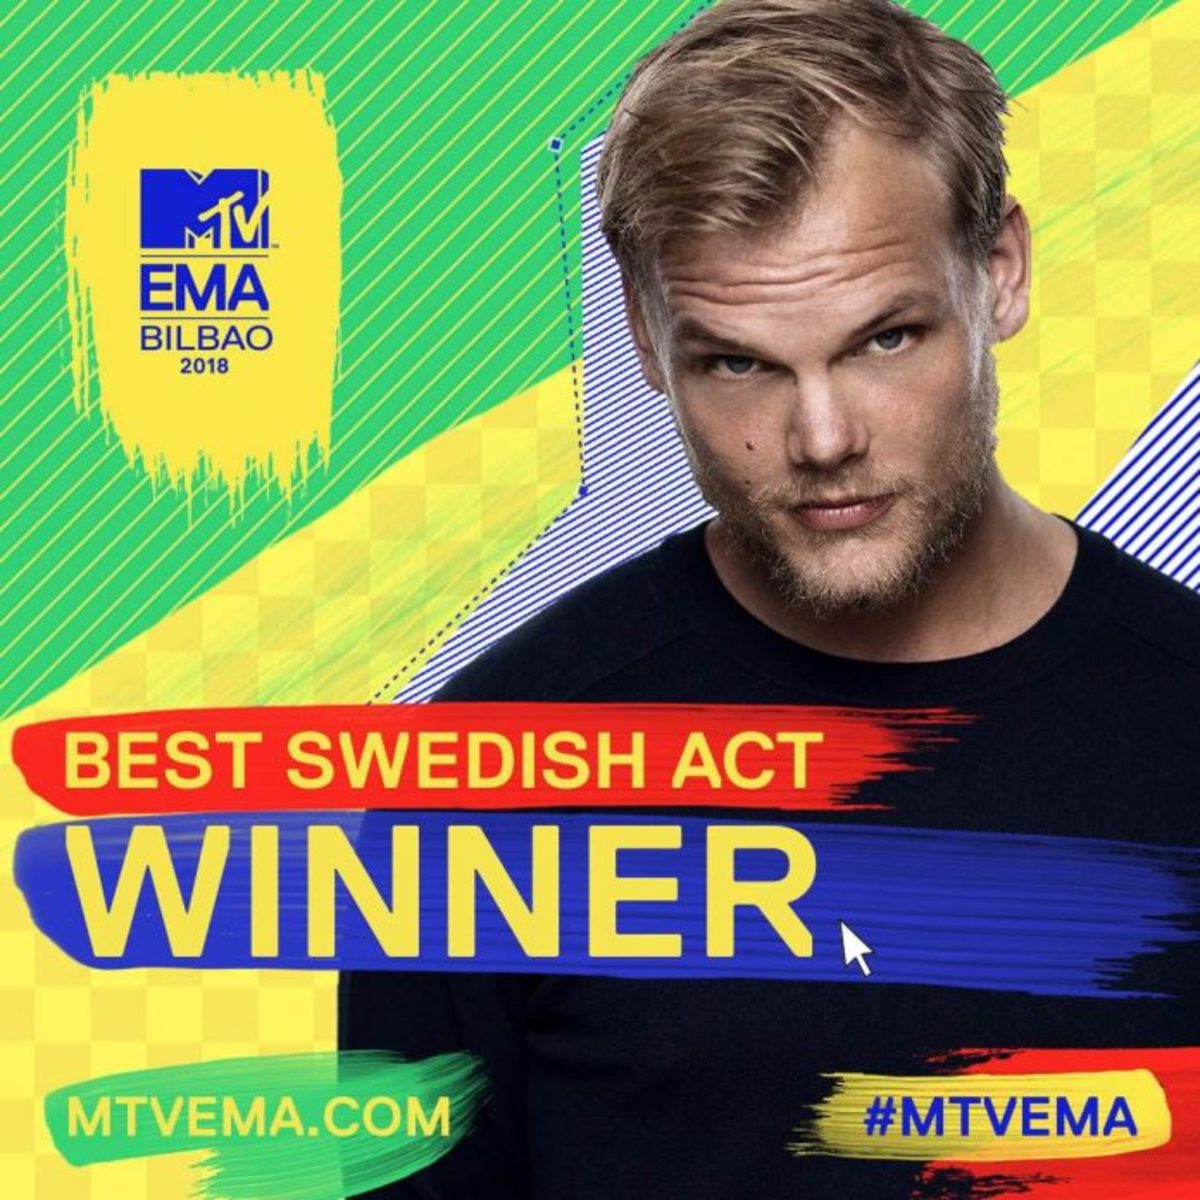 MTV Europe Music Awards 2018 - Best Swedish Act - Avicii